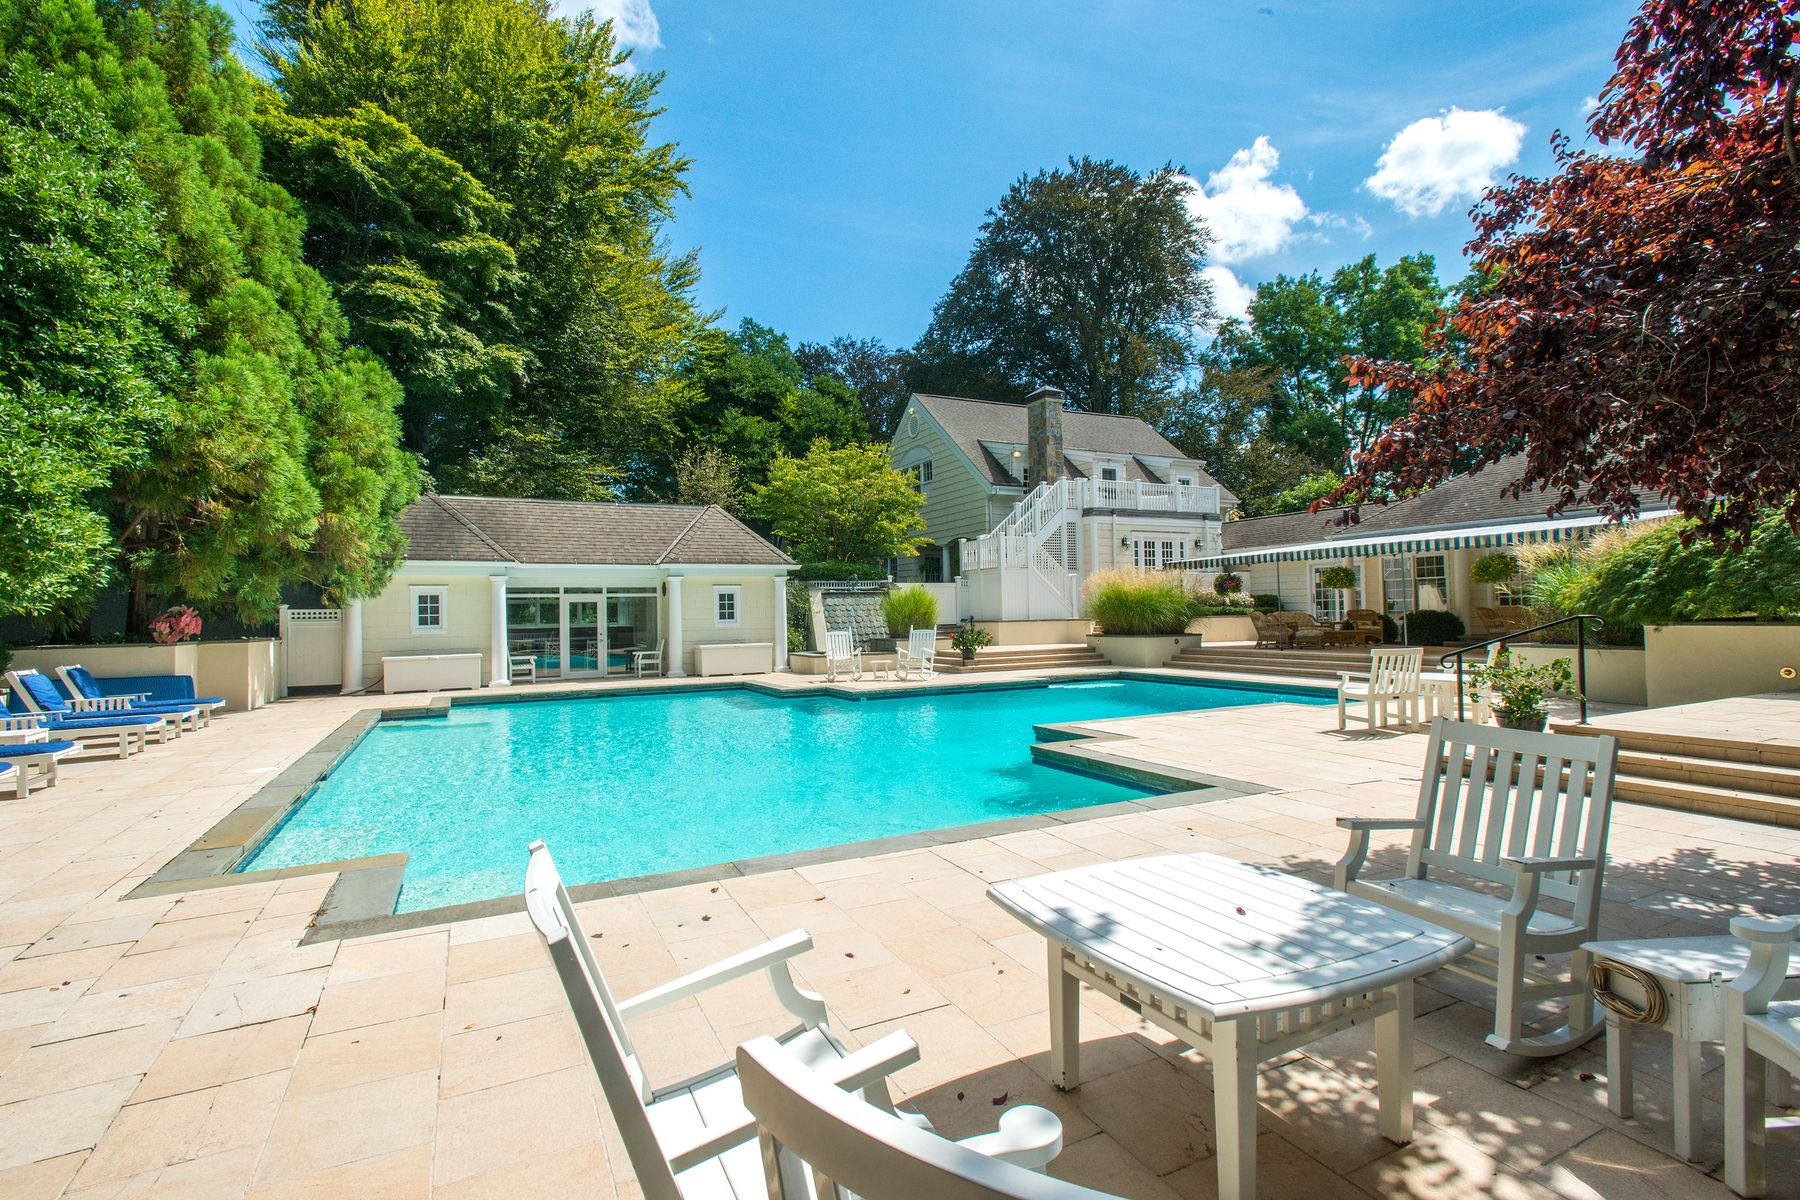 Single Family Homes for Sale at Stunning Country Compound Near Town 1 Winding Lane Greenwich, Connecticut 06831 United States